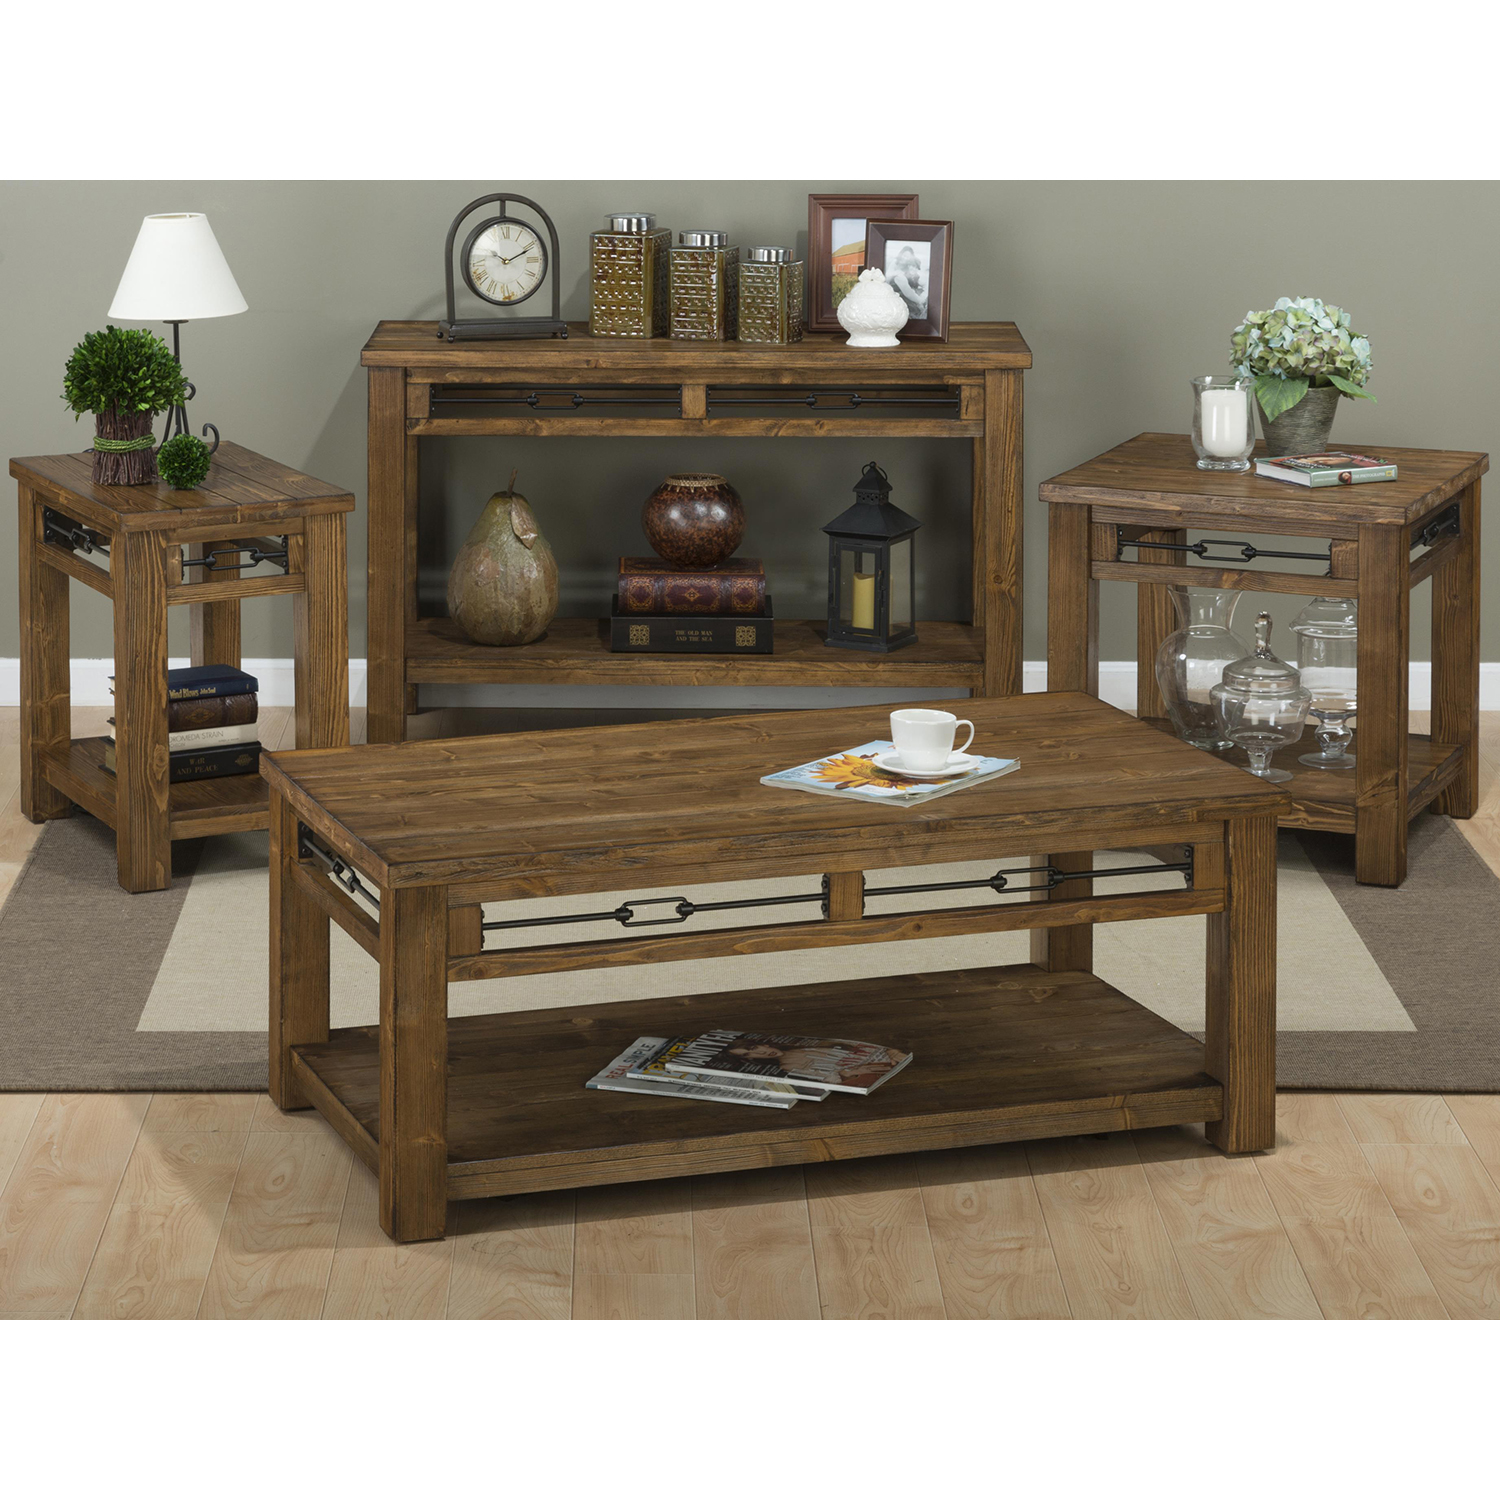 San Marcos Square End Table - JOFR-463-3